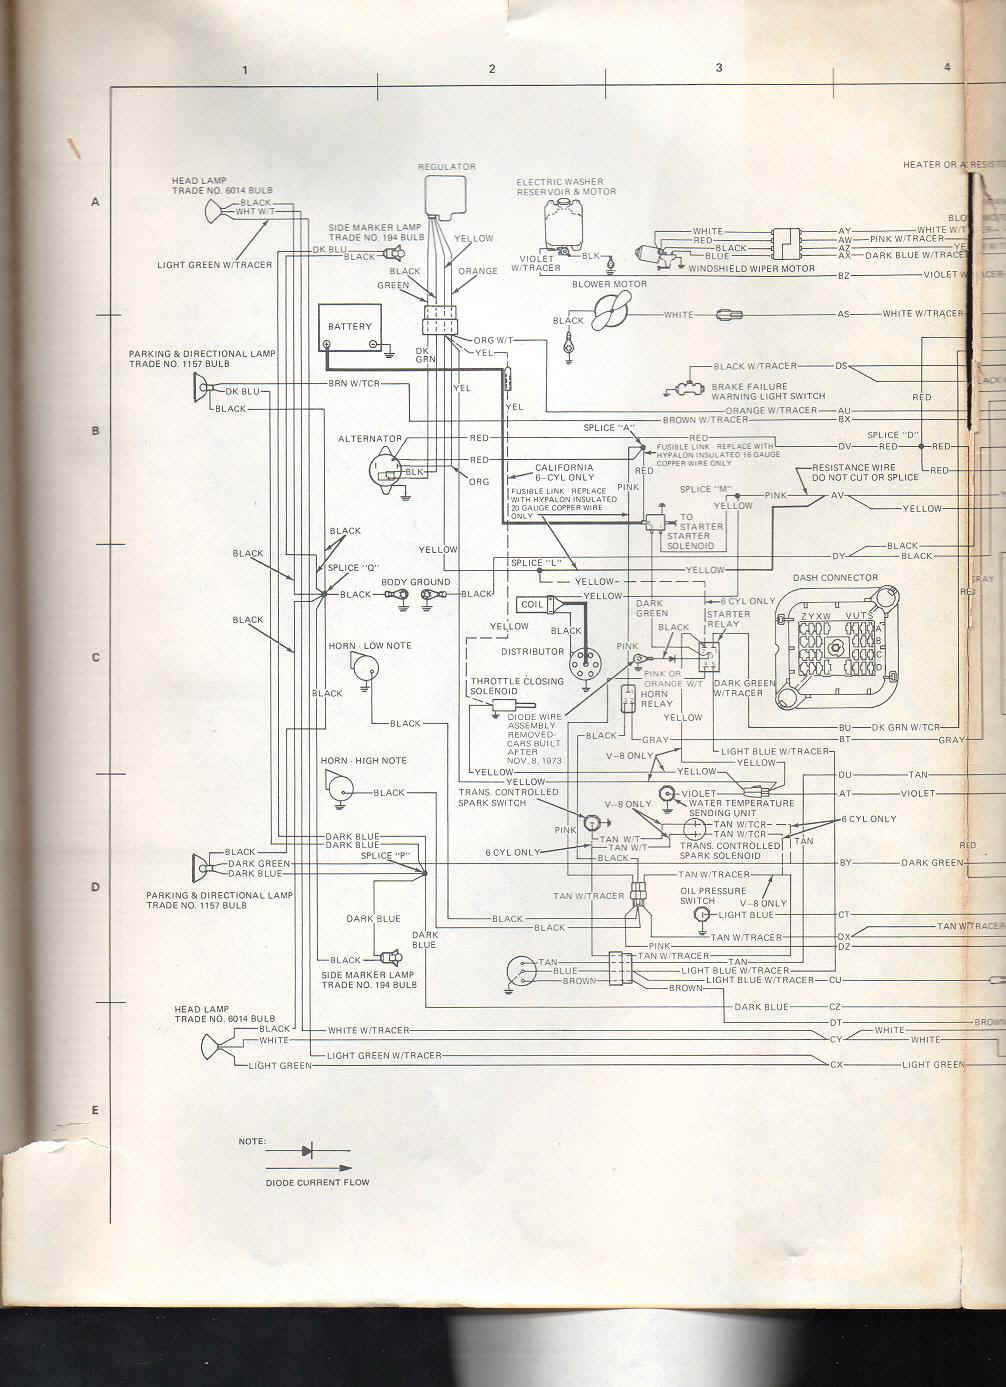 1974 amc javelin wiring diagram wiring diagram update amc electrical troubleshooting